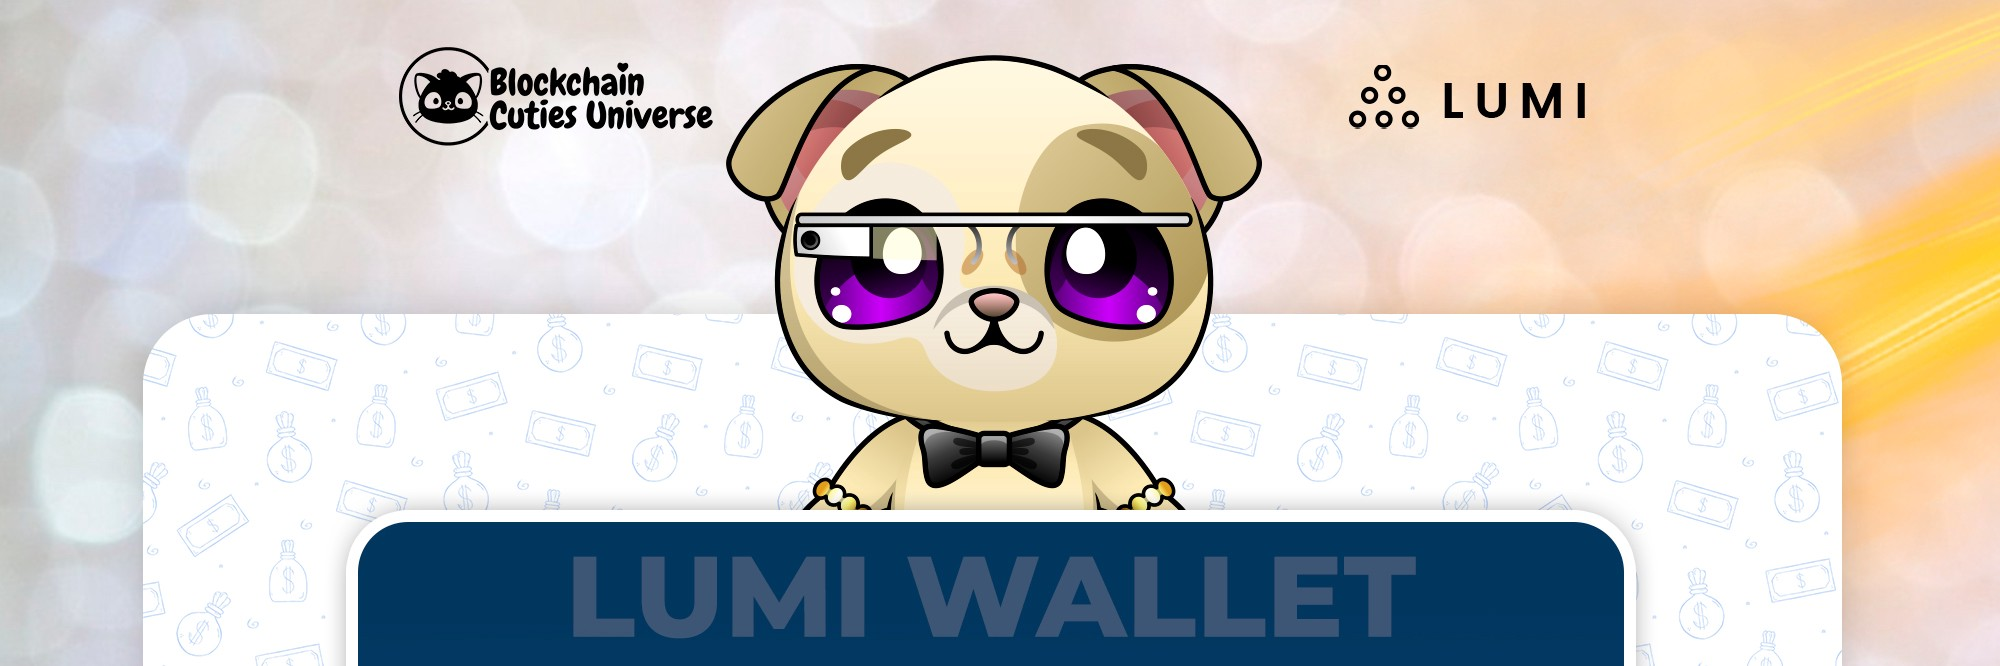 CUTE Coin Now Supported by Lumi Wallet - Blockchain Cuties